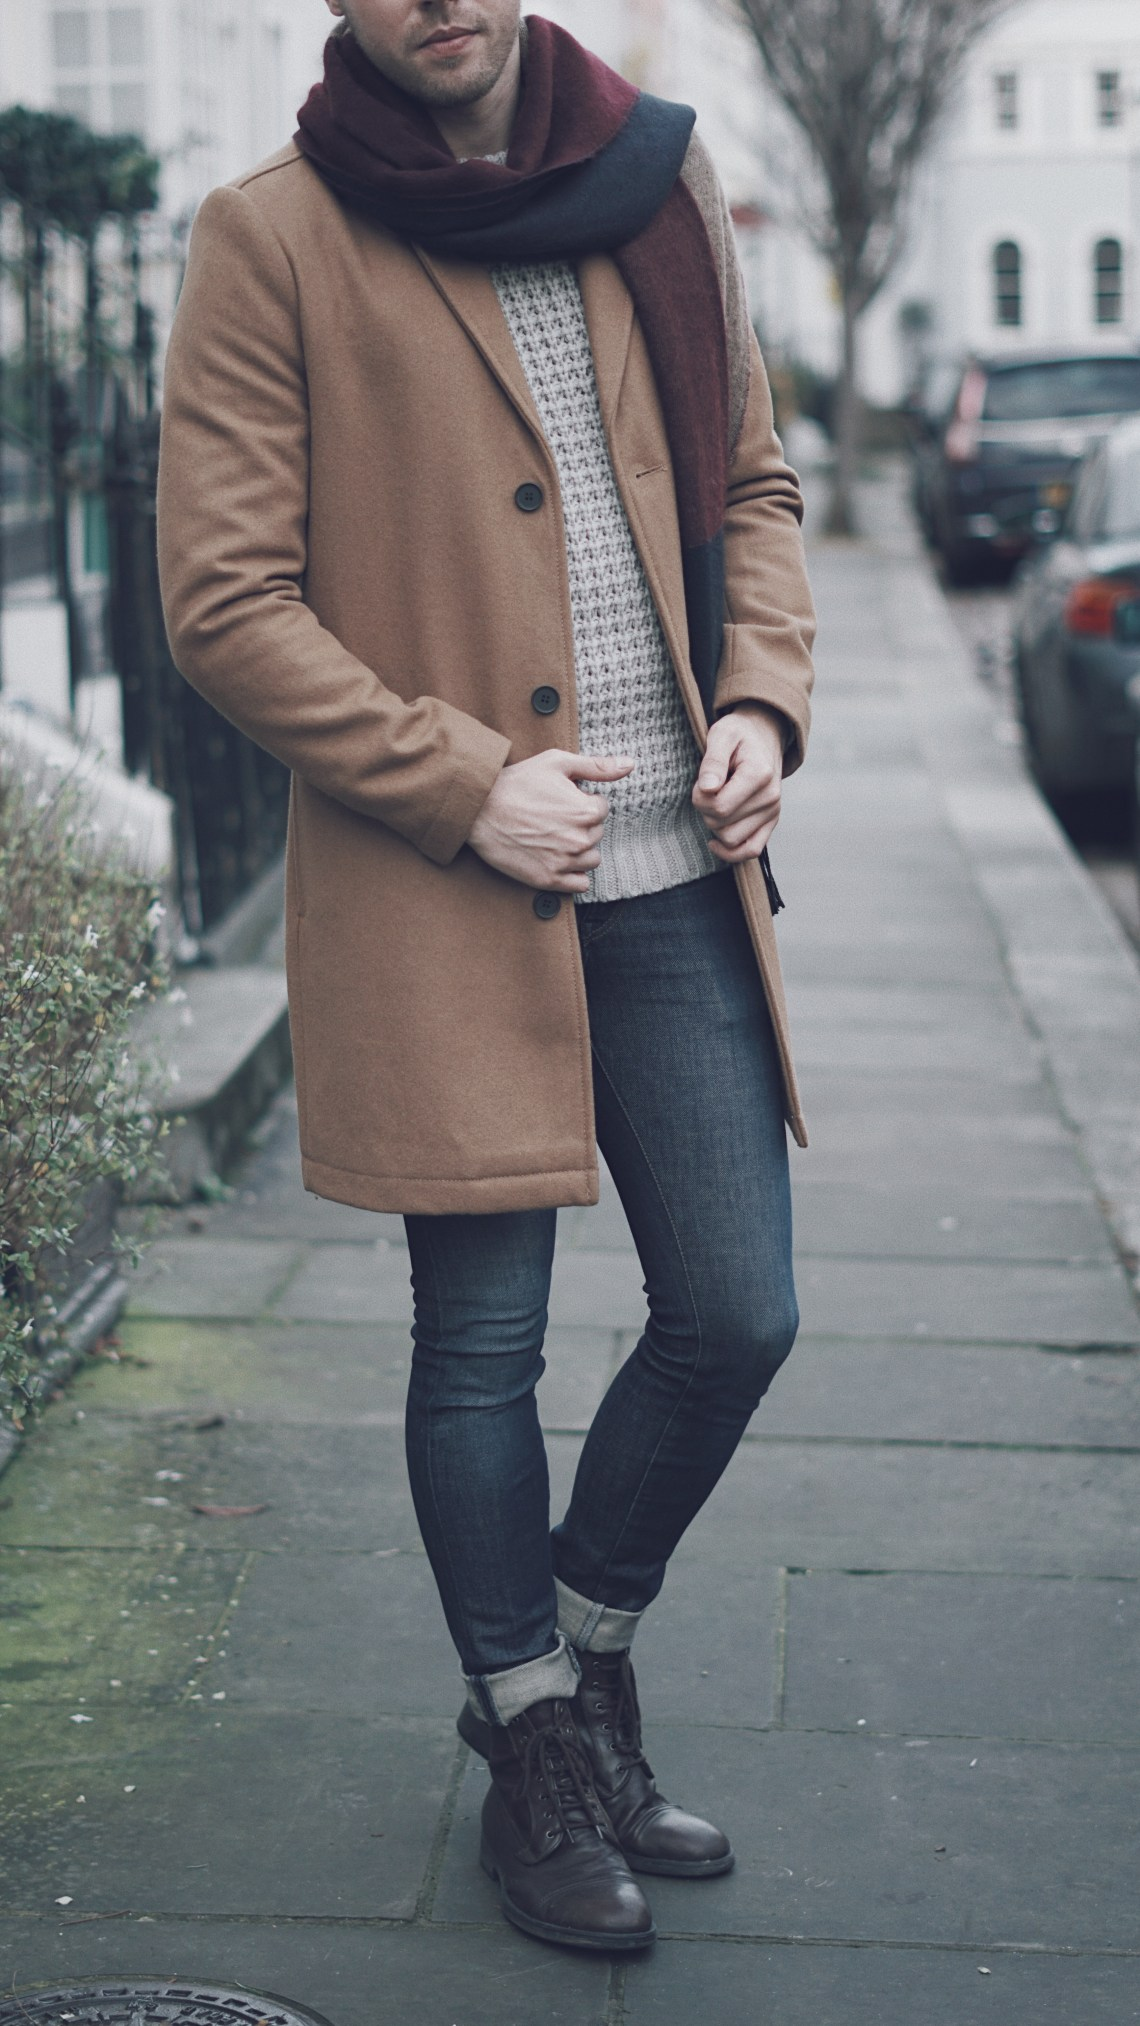 Home for Christmas look. Camel smart overcoat from Topman. Brown leather boots from Geox.